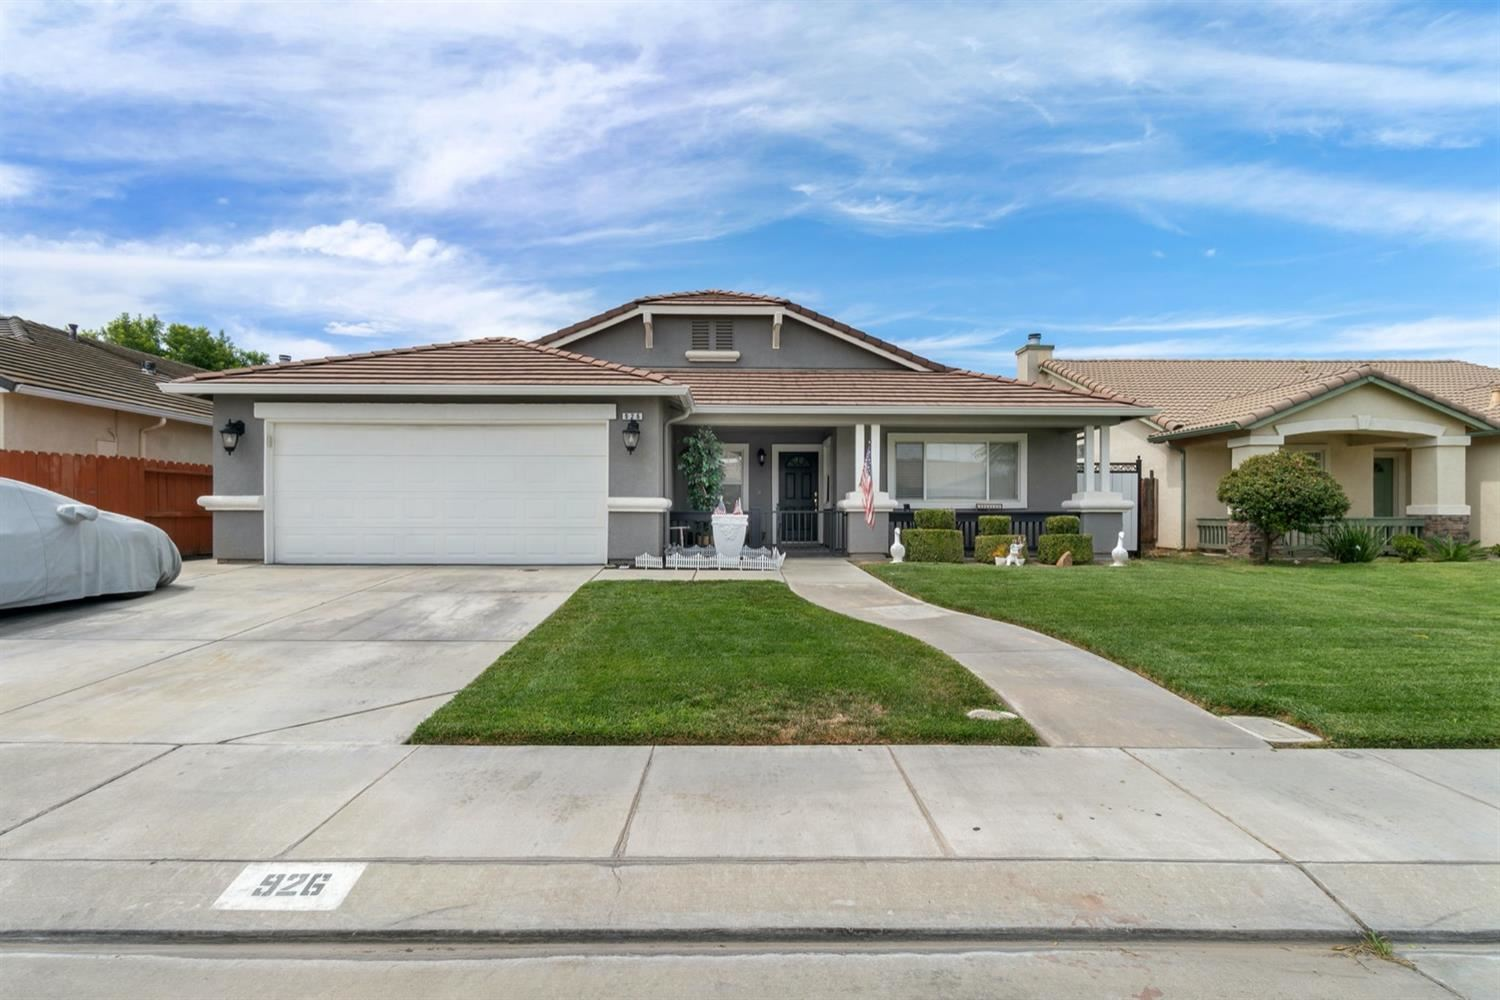 926 Norman Drive, Manteca, CA 95336 - MLS#: 20047935